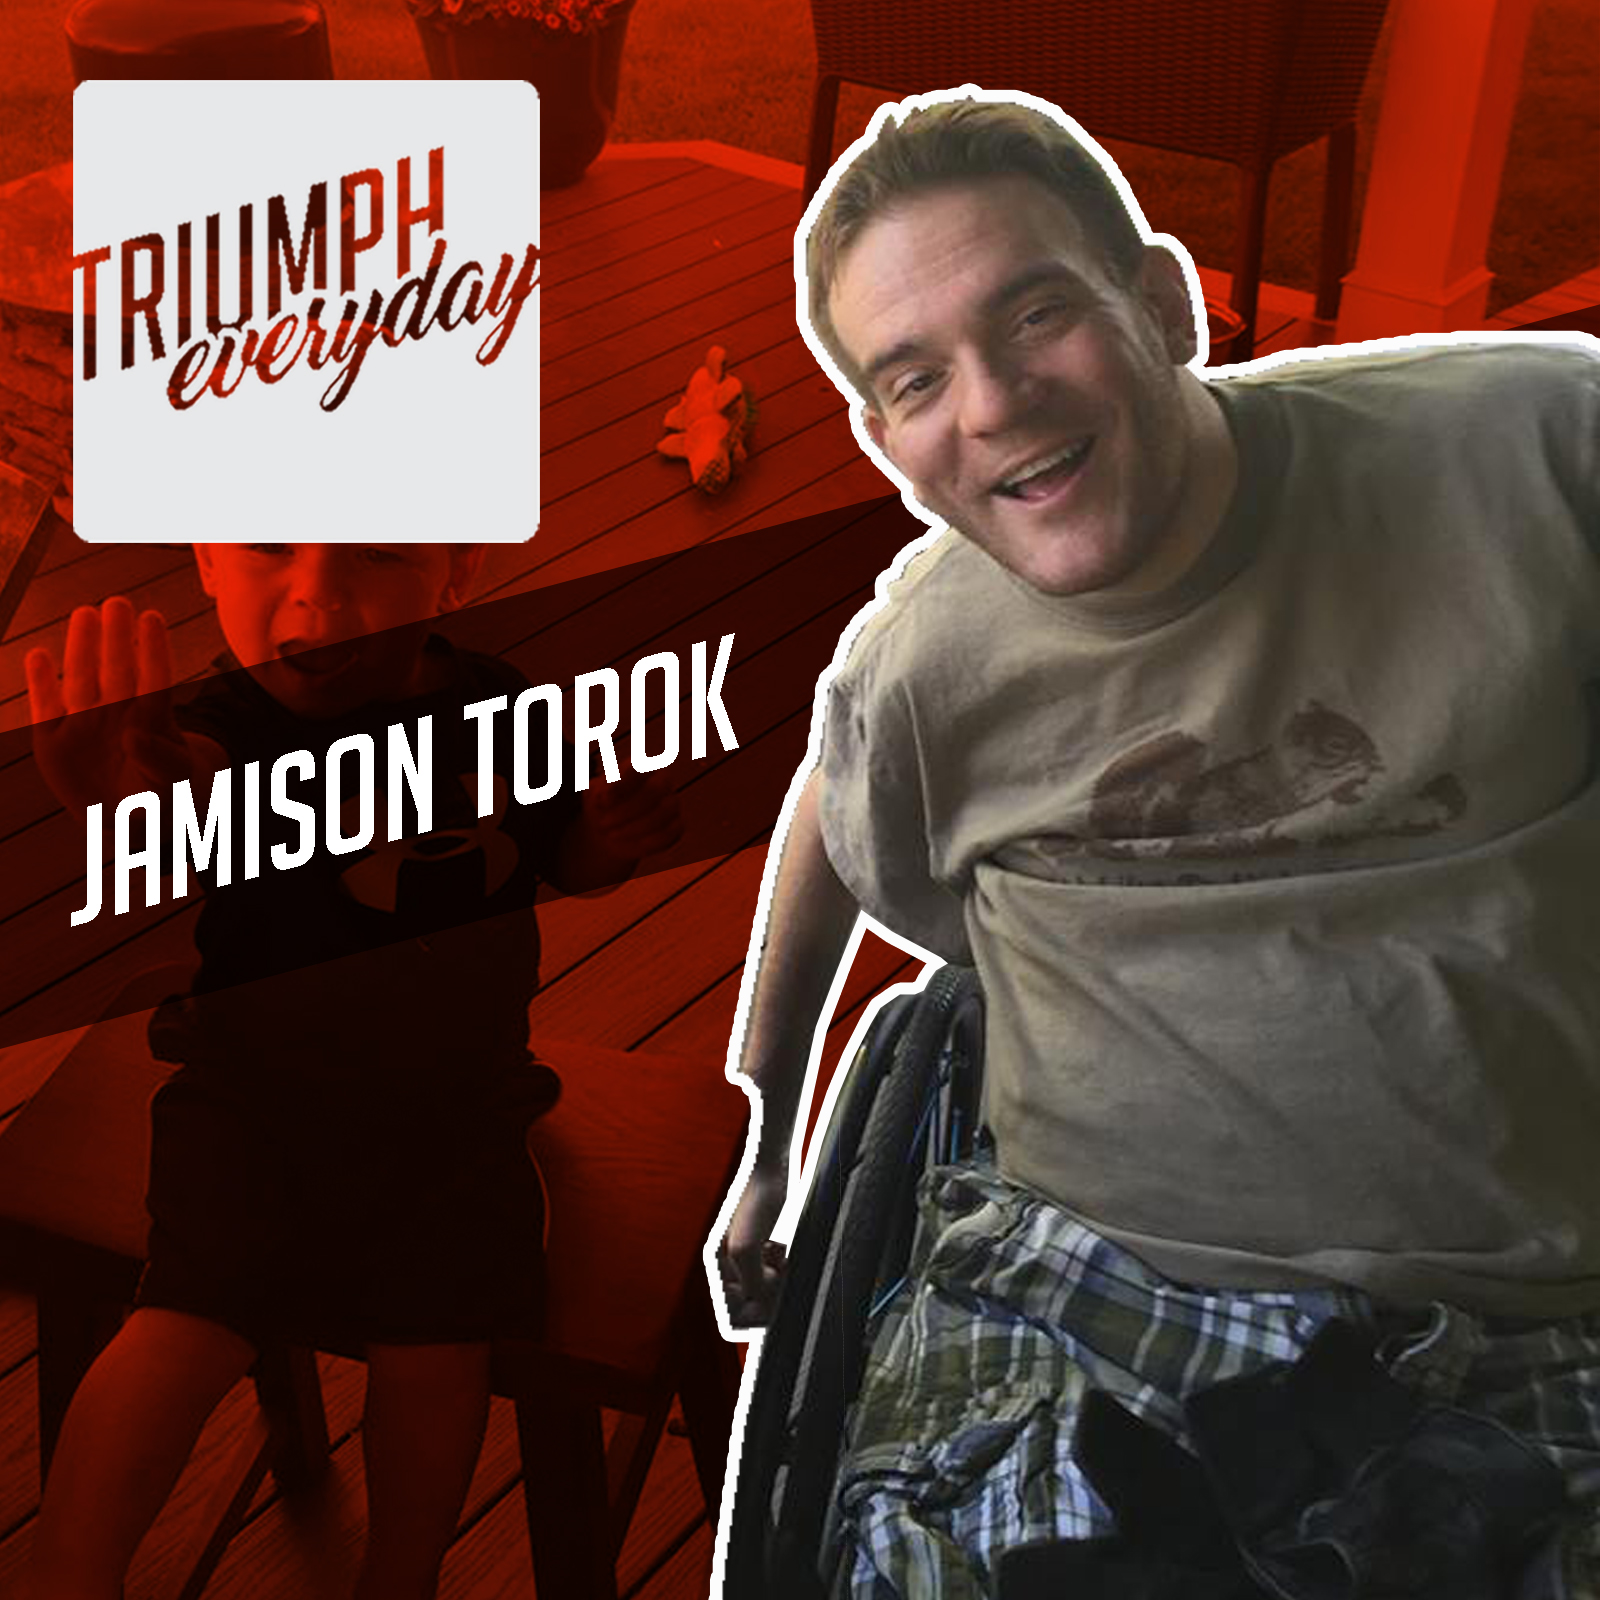 Triumph Everyday Jamison Soundcloud